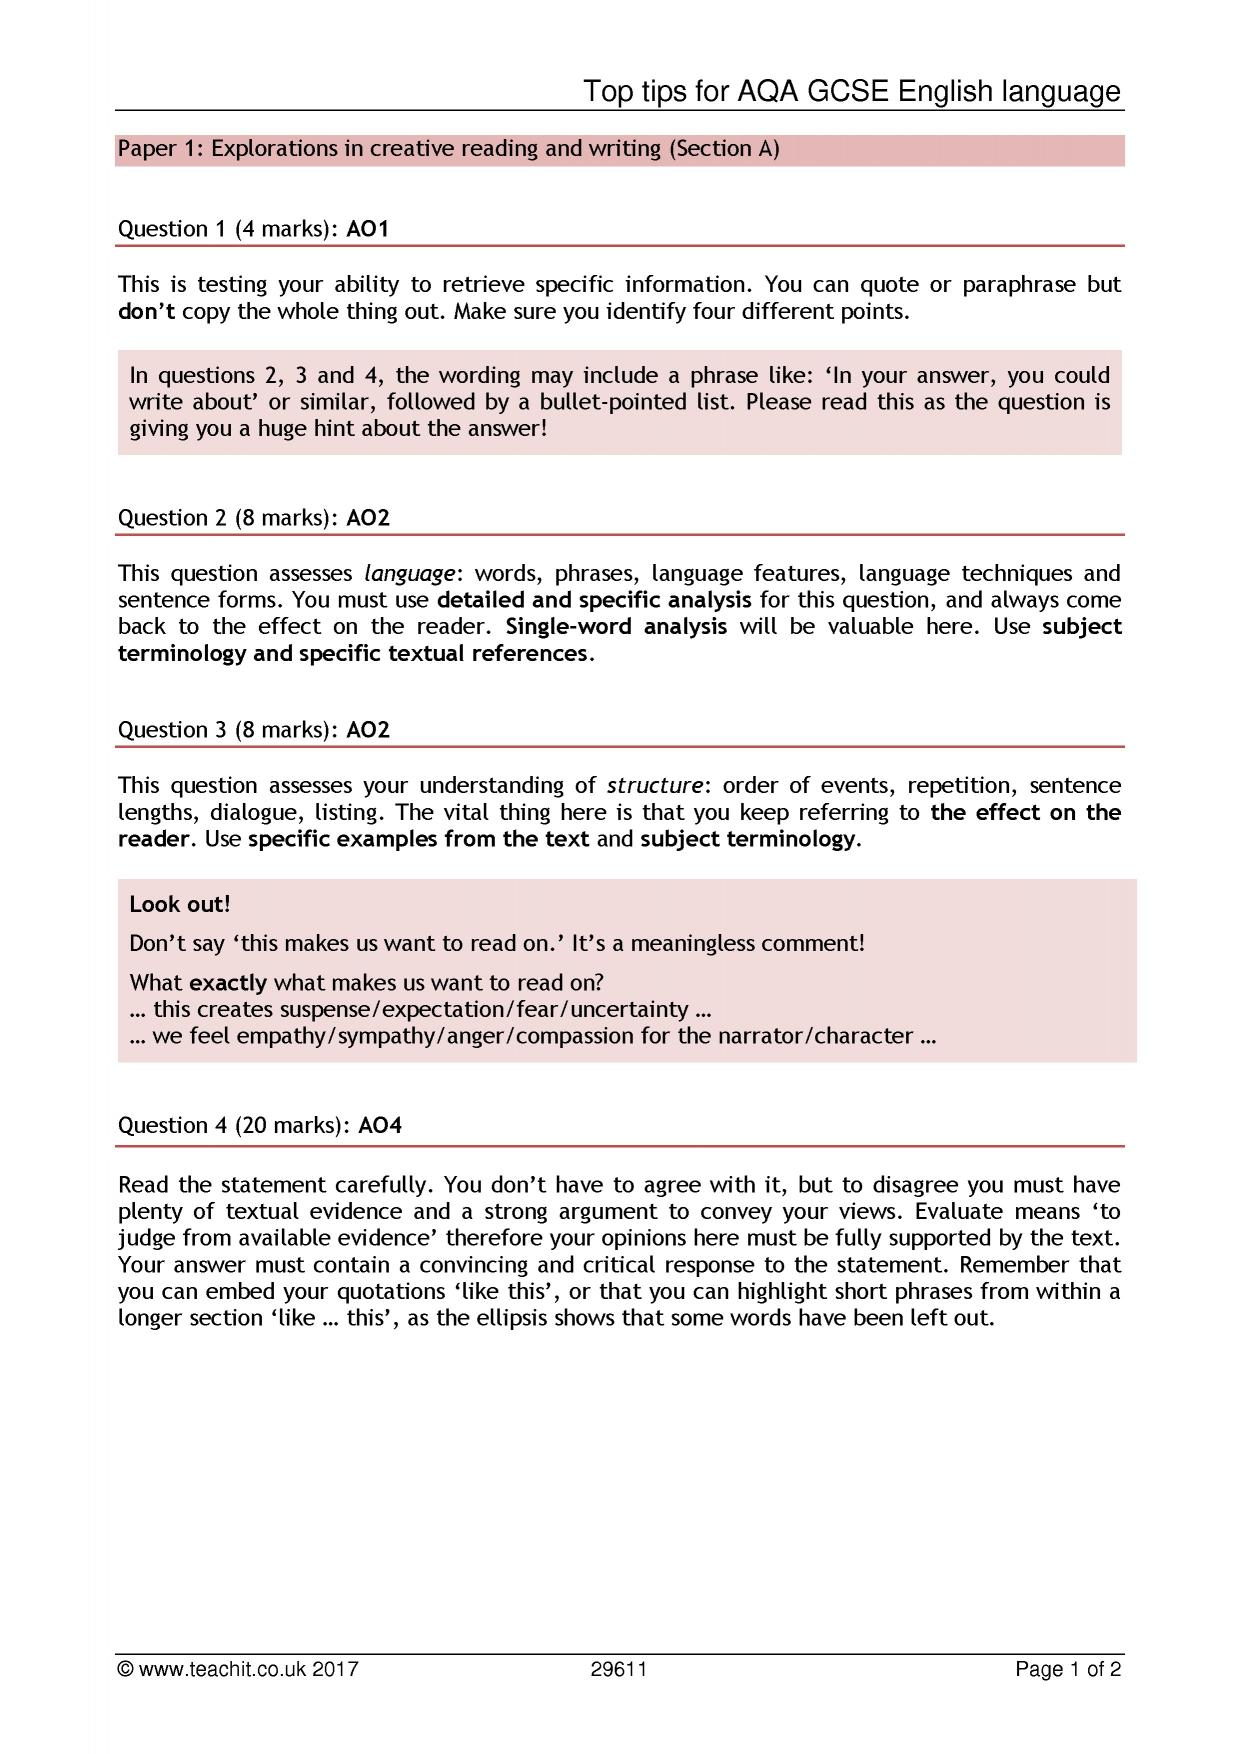 011 Research Paper Example Of Questions Pdf X68072 Php Pagespeed Ic Sensational Examples Qualitative And Hypotheses Quantitative Full